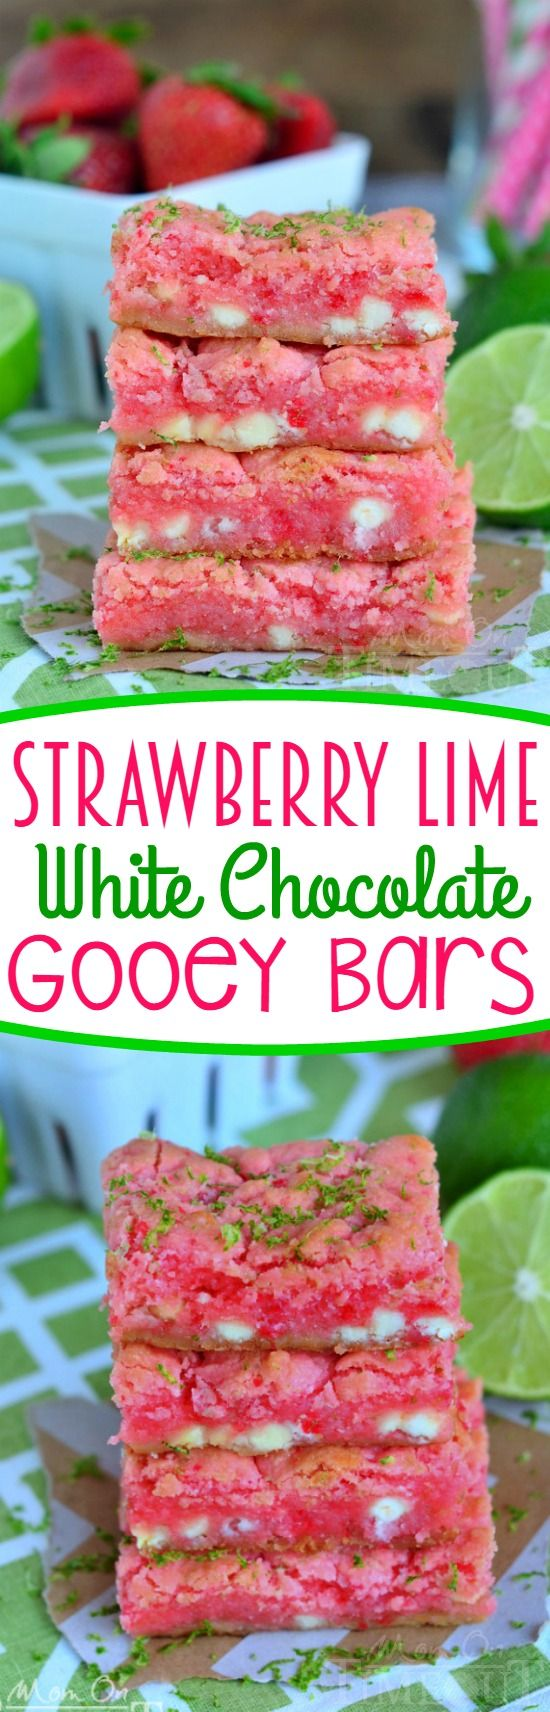 These easy Strawberry Lime White Chocolate Gooey Bars will make the perfect spring or summer time treat! Start with a cake mix and see what happens! Everyone goes crazy for this easy strawberry dessert!